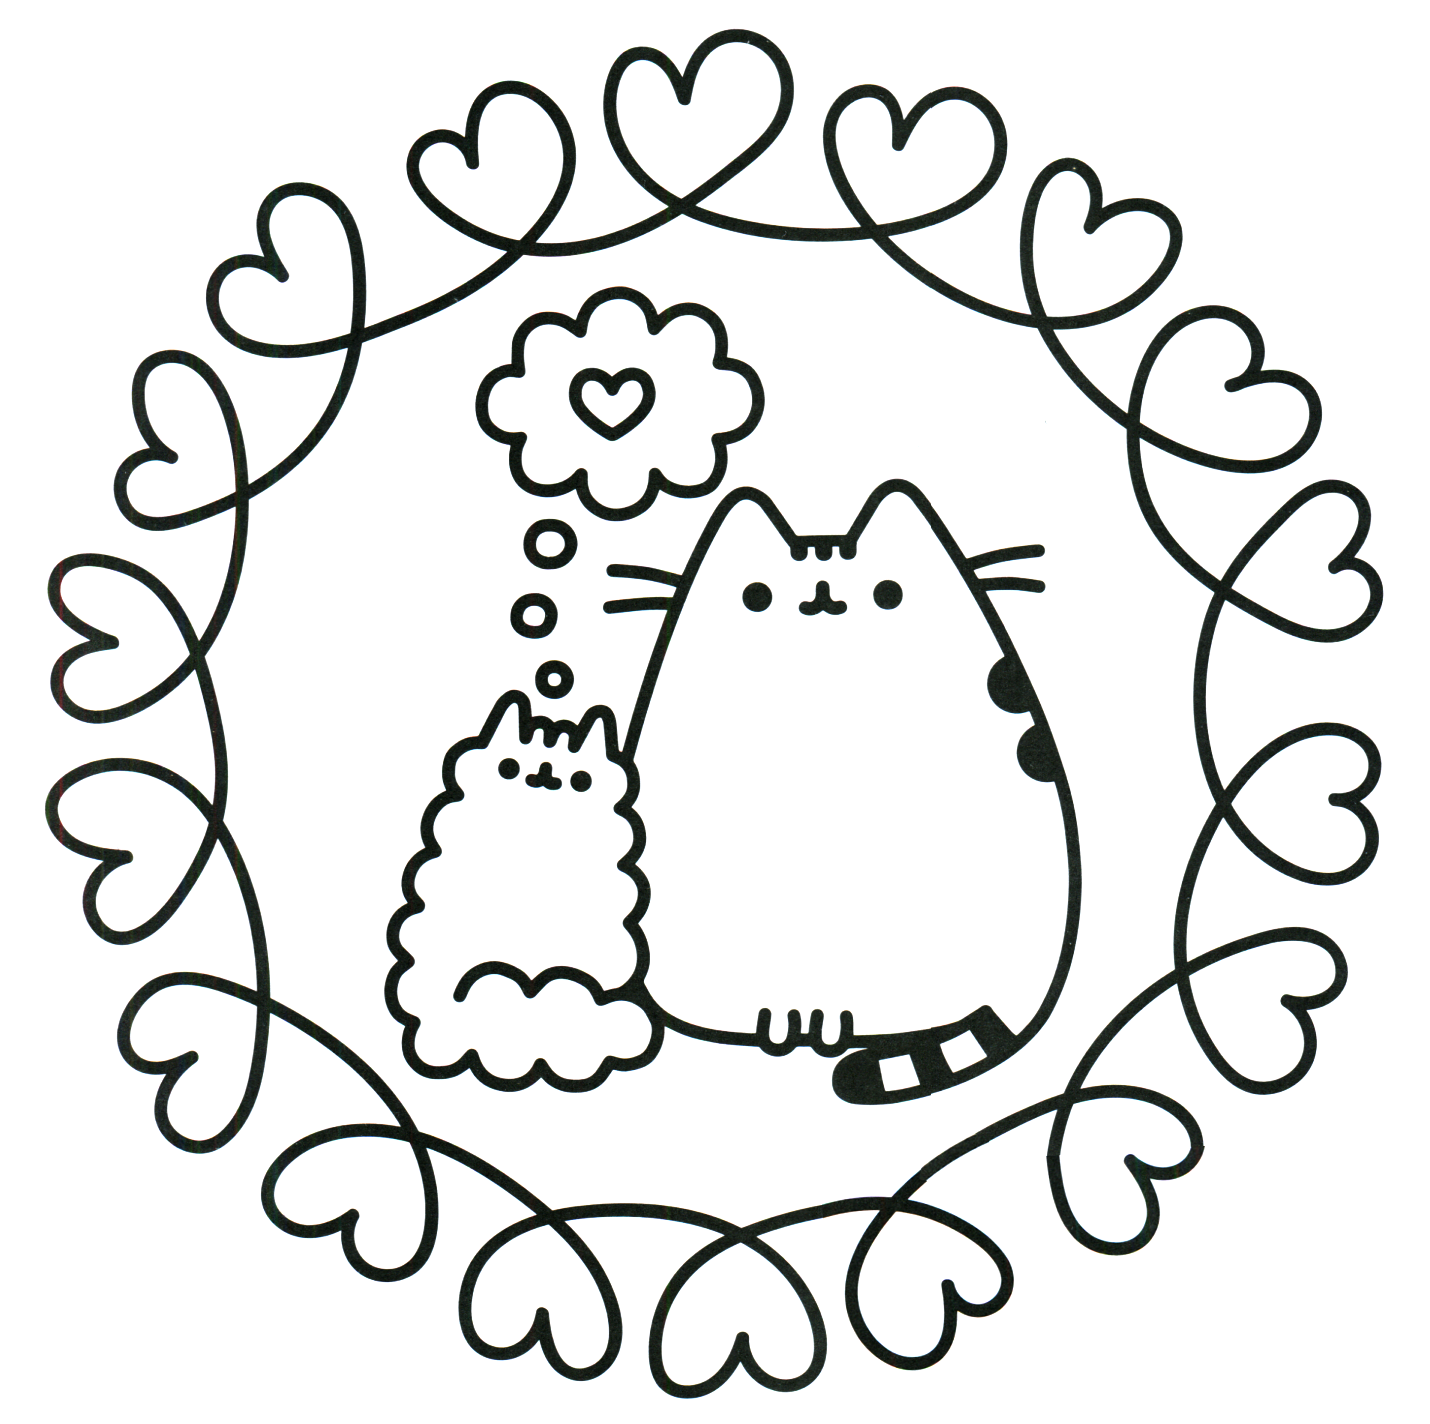 Pusheen Coloring Book Pusheen Pusheen the Cat | Cats-Pusheen ...